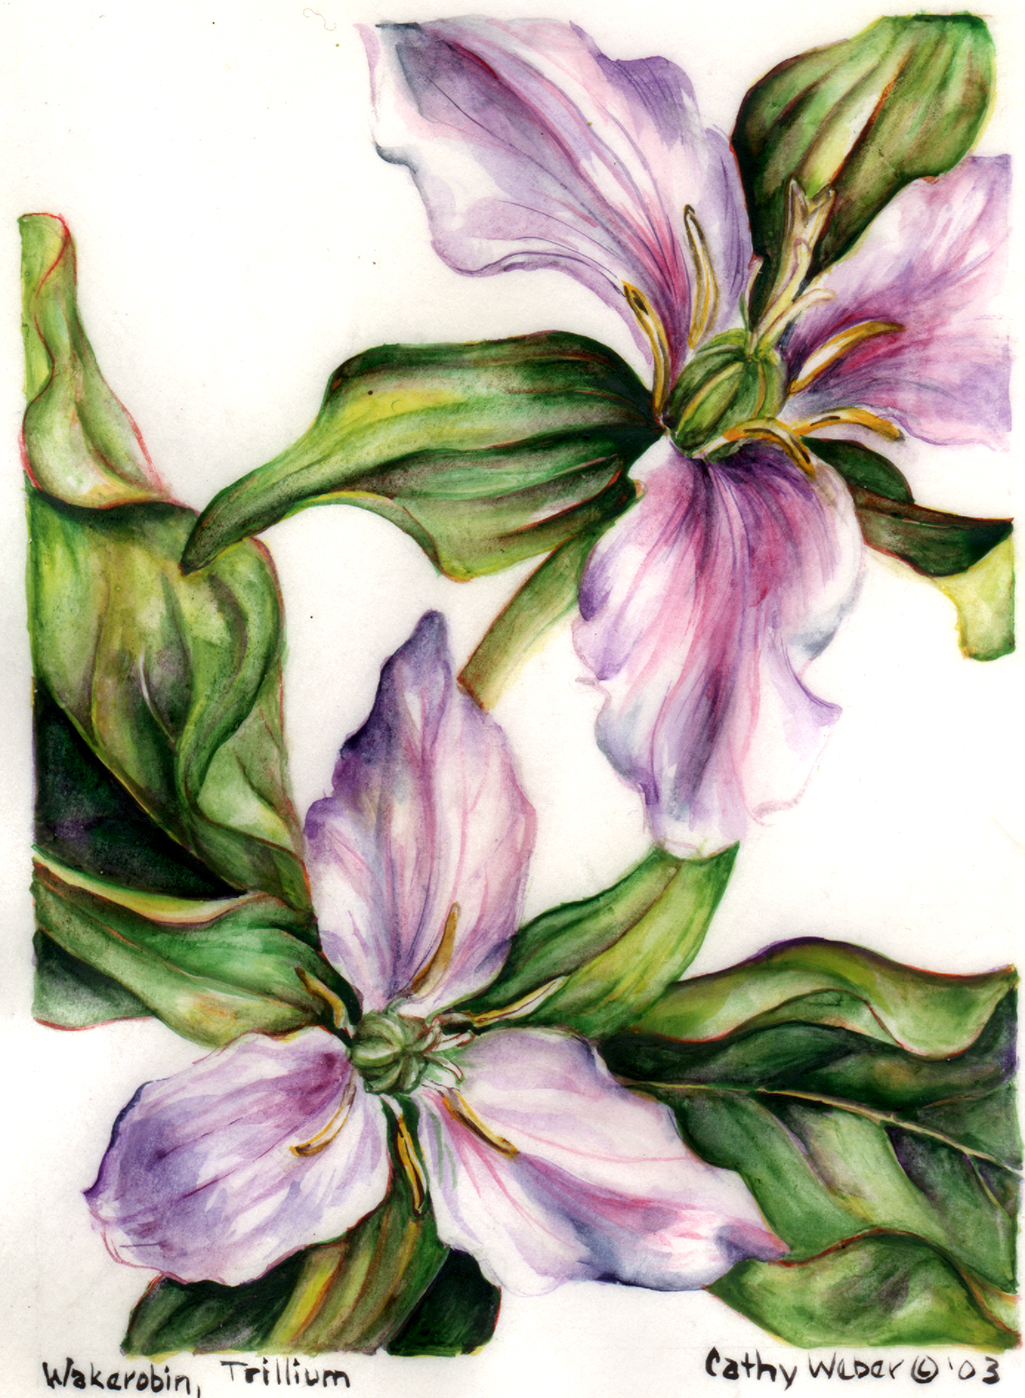 cathy weber - art - painting - woman -flowers - watercolor - moon phase- montana - painting - parchment - skin - botanical - study - wildflower - trillium